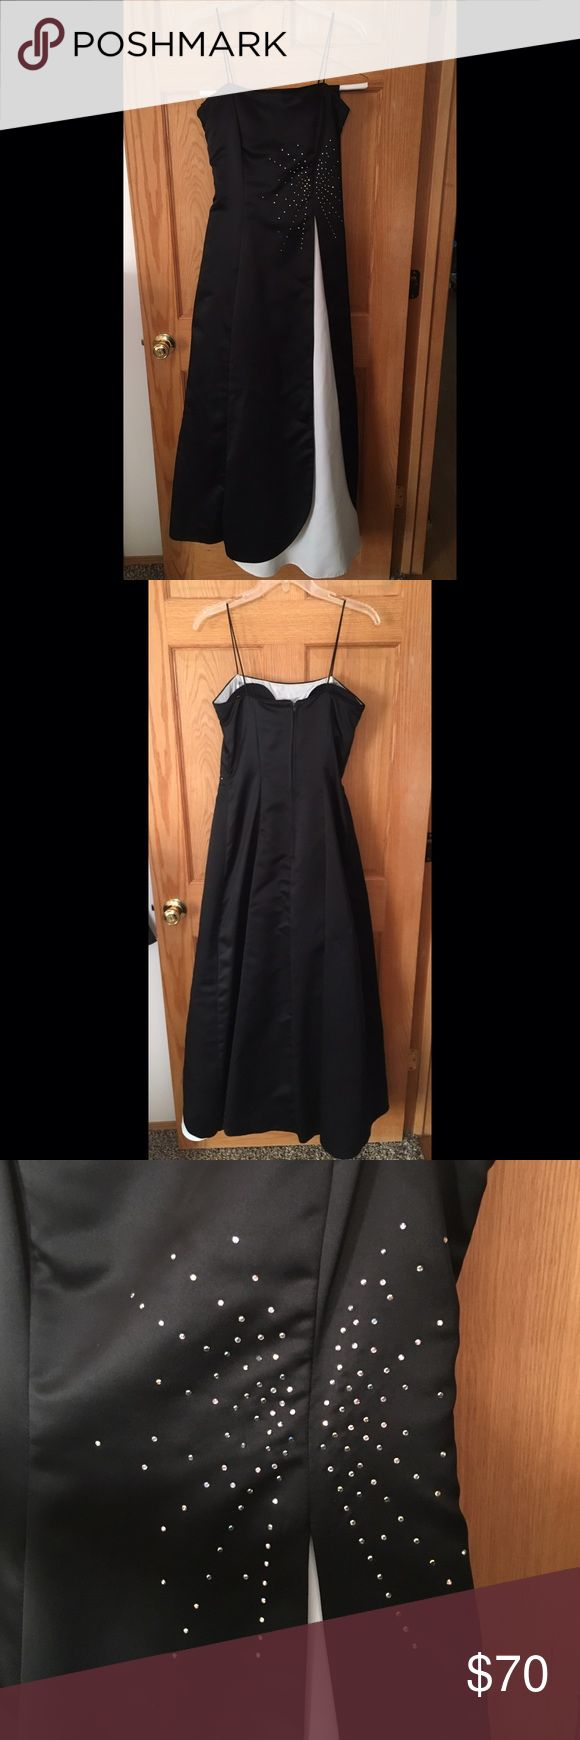 Black and white formal dress with rhinestones Spaghetti strap, black and white formal dress with rhinestones. Great condition, worn once. Some staining to the white fabric.(shown in photos) Built in slip and a little poofyness from tulle fabric. Comes with shawl, never used. Size 5-6 Laura Ryner Dresses Prom